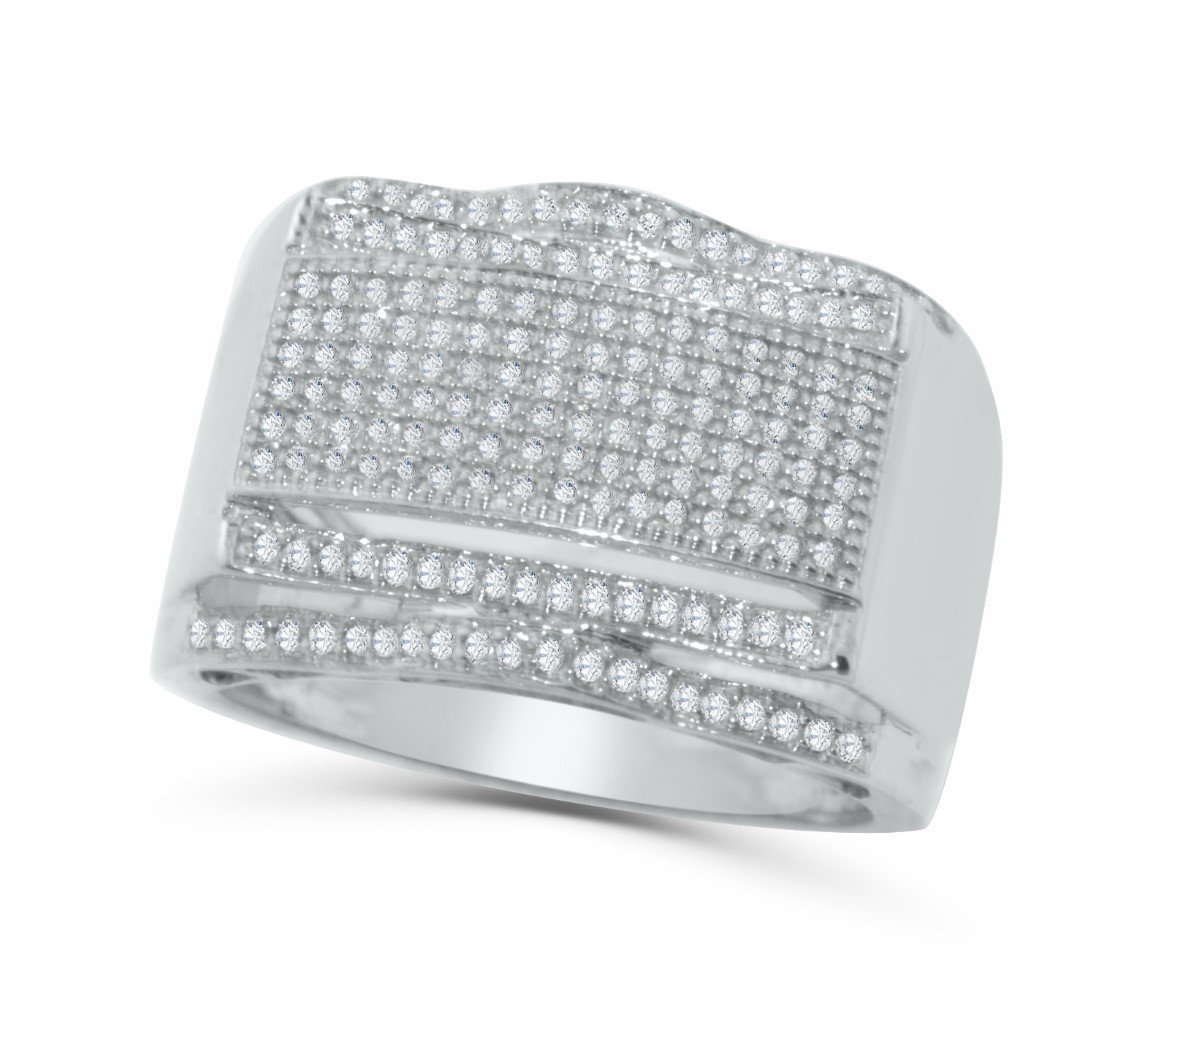 10K White Gold Diamond Ring Mens 1/2ctw Fashion Pinky or Wedding Ring 16mm Wide (i2/i3, I/j)